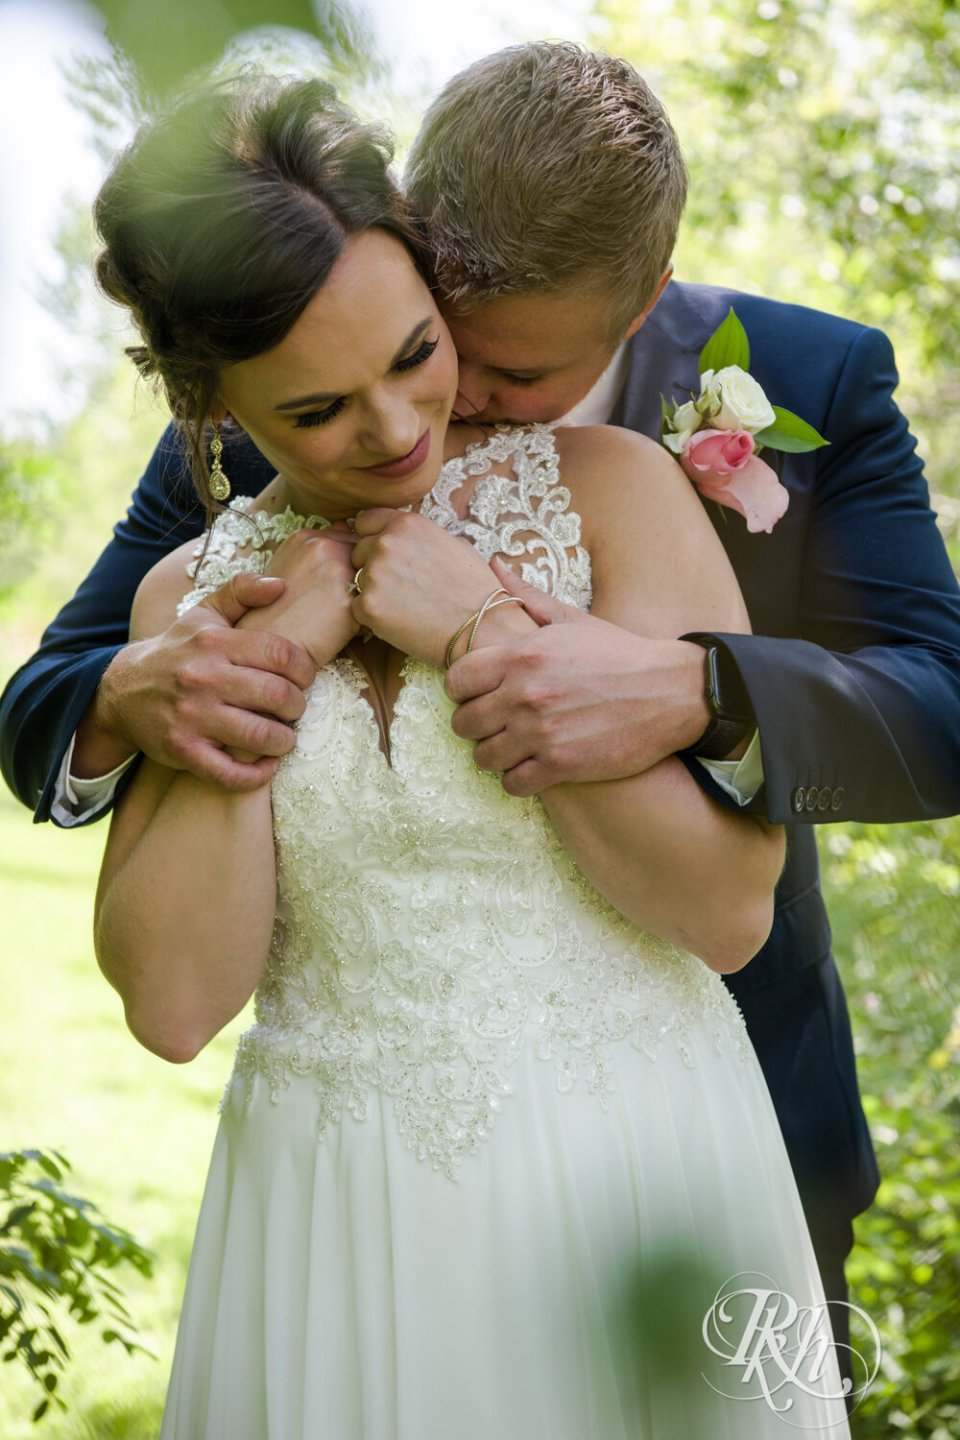 Bride and groom photo in August